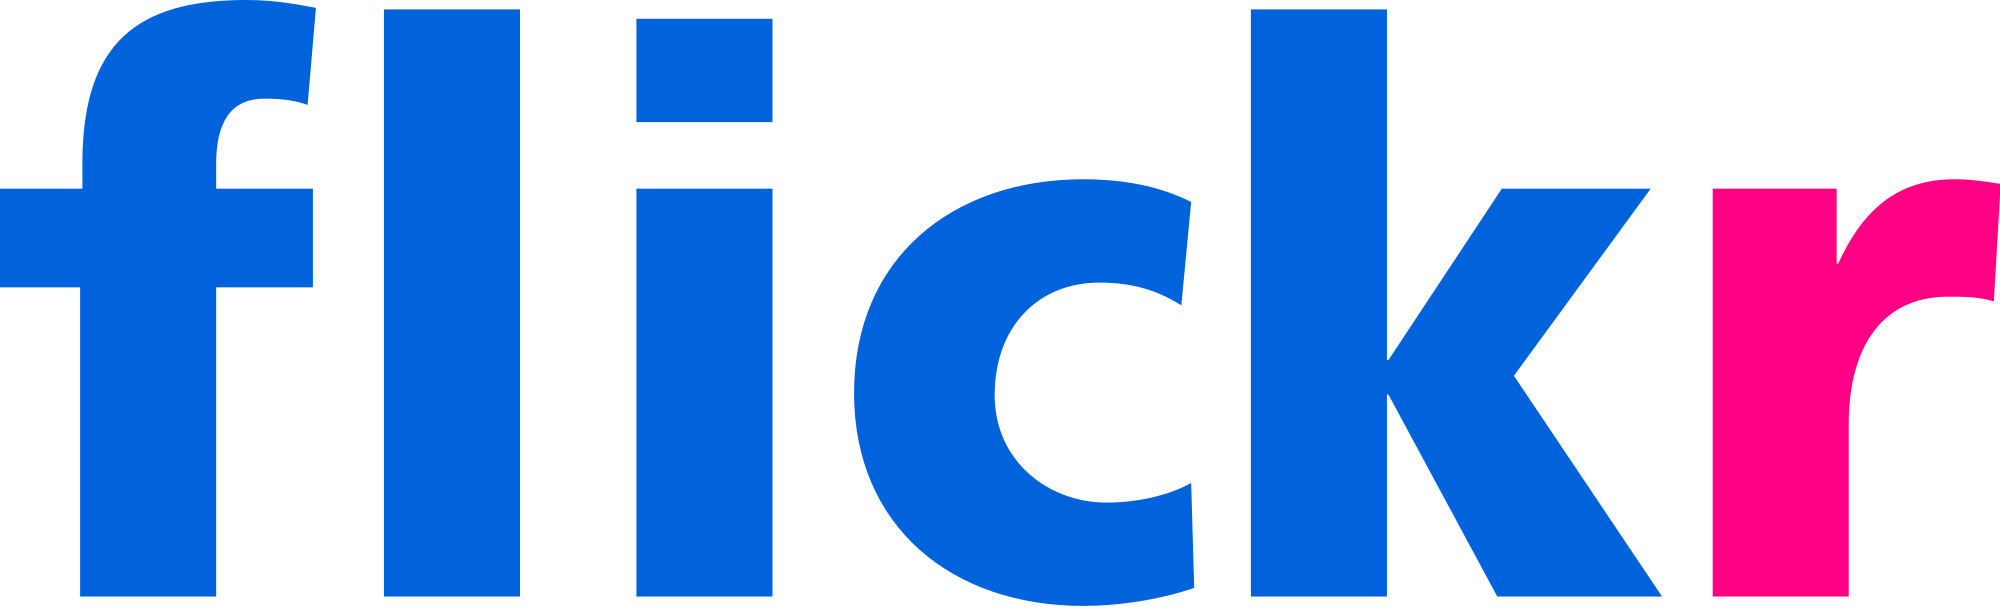 Logotipo de Flickr